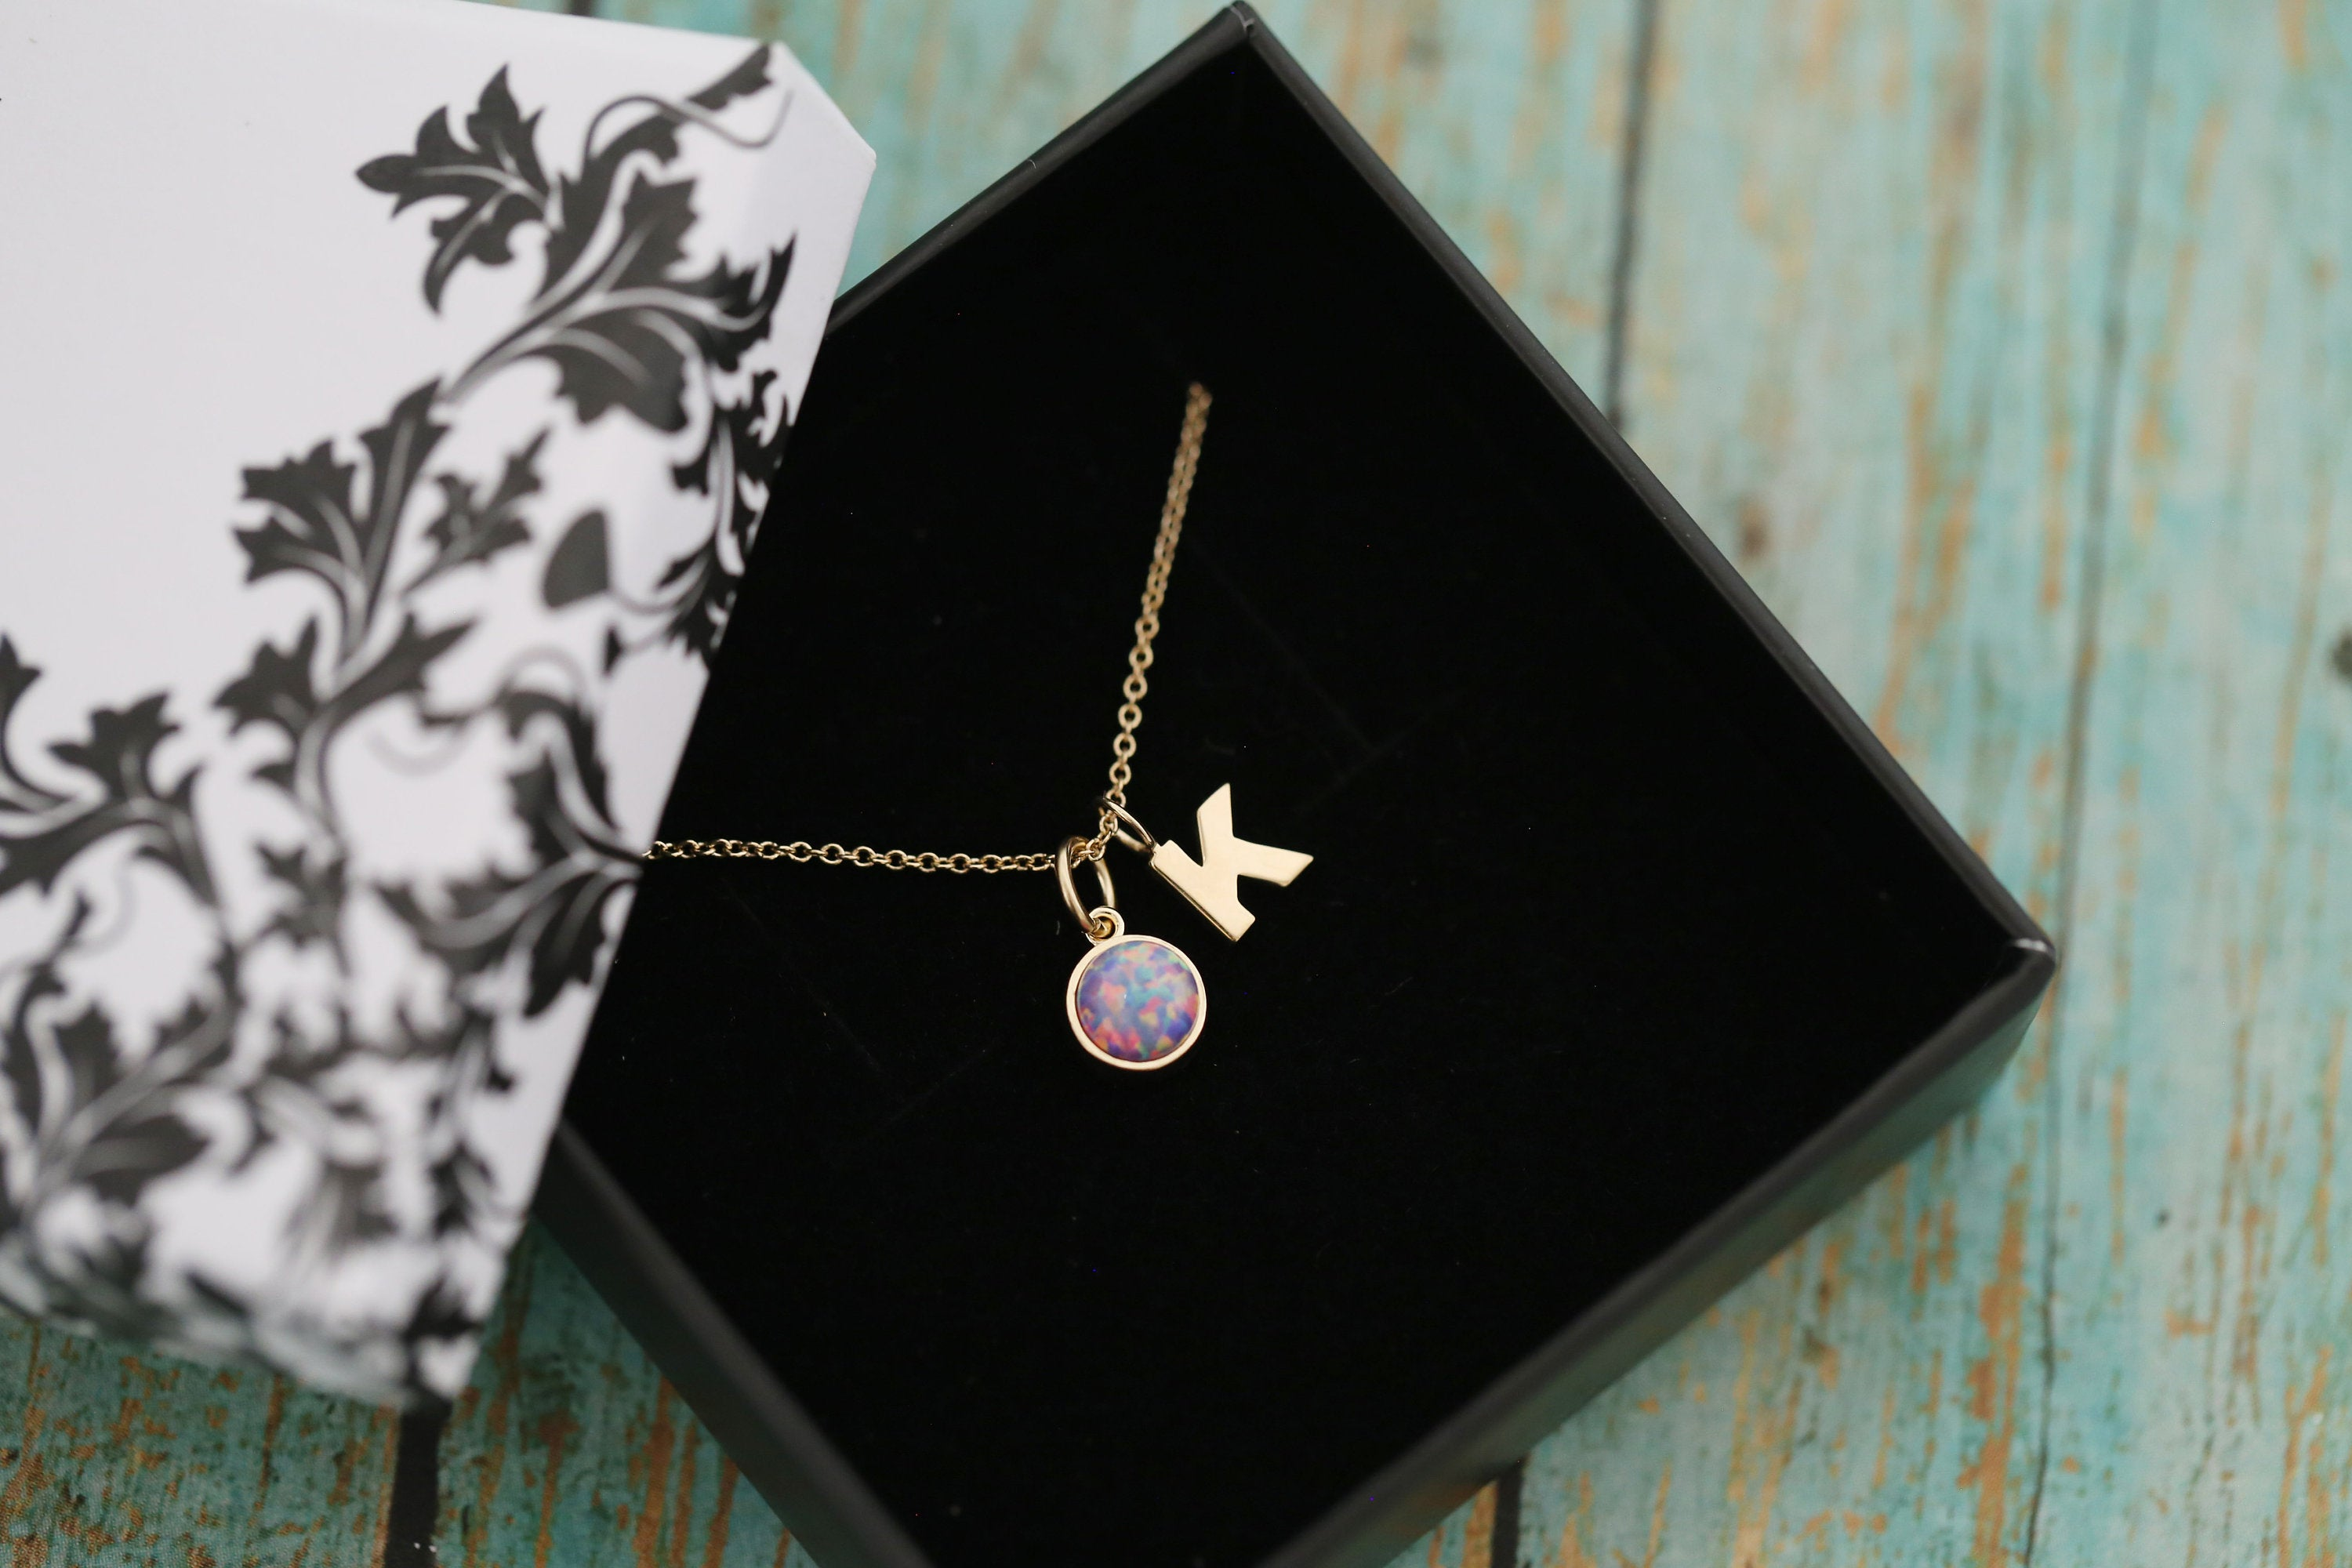 14k Yellow Gold 6mm Opal Cremation Ash Pendant with Initial - Cremation Pendant - Cremation Jewelry - Ash Necklace - Pet Loss - 6mm9